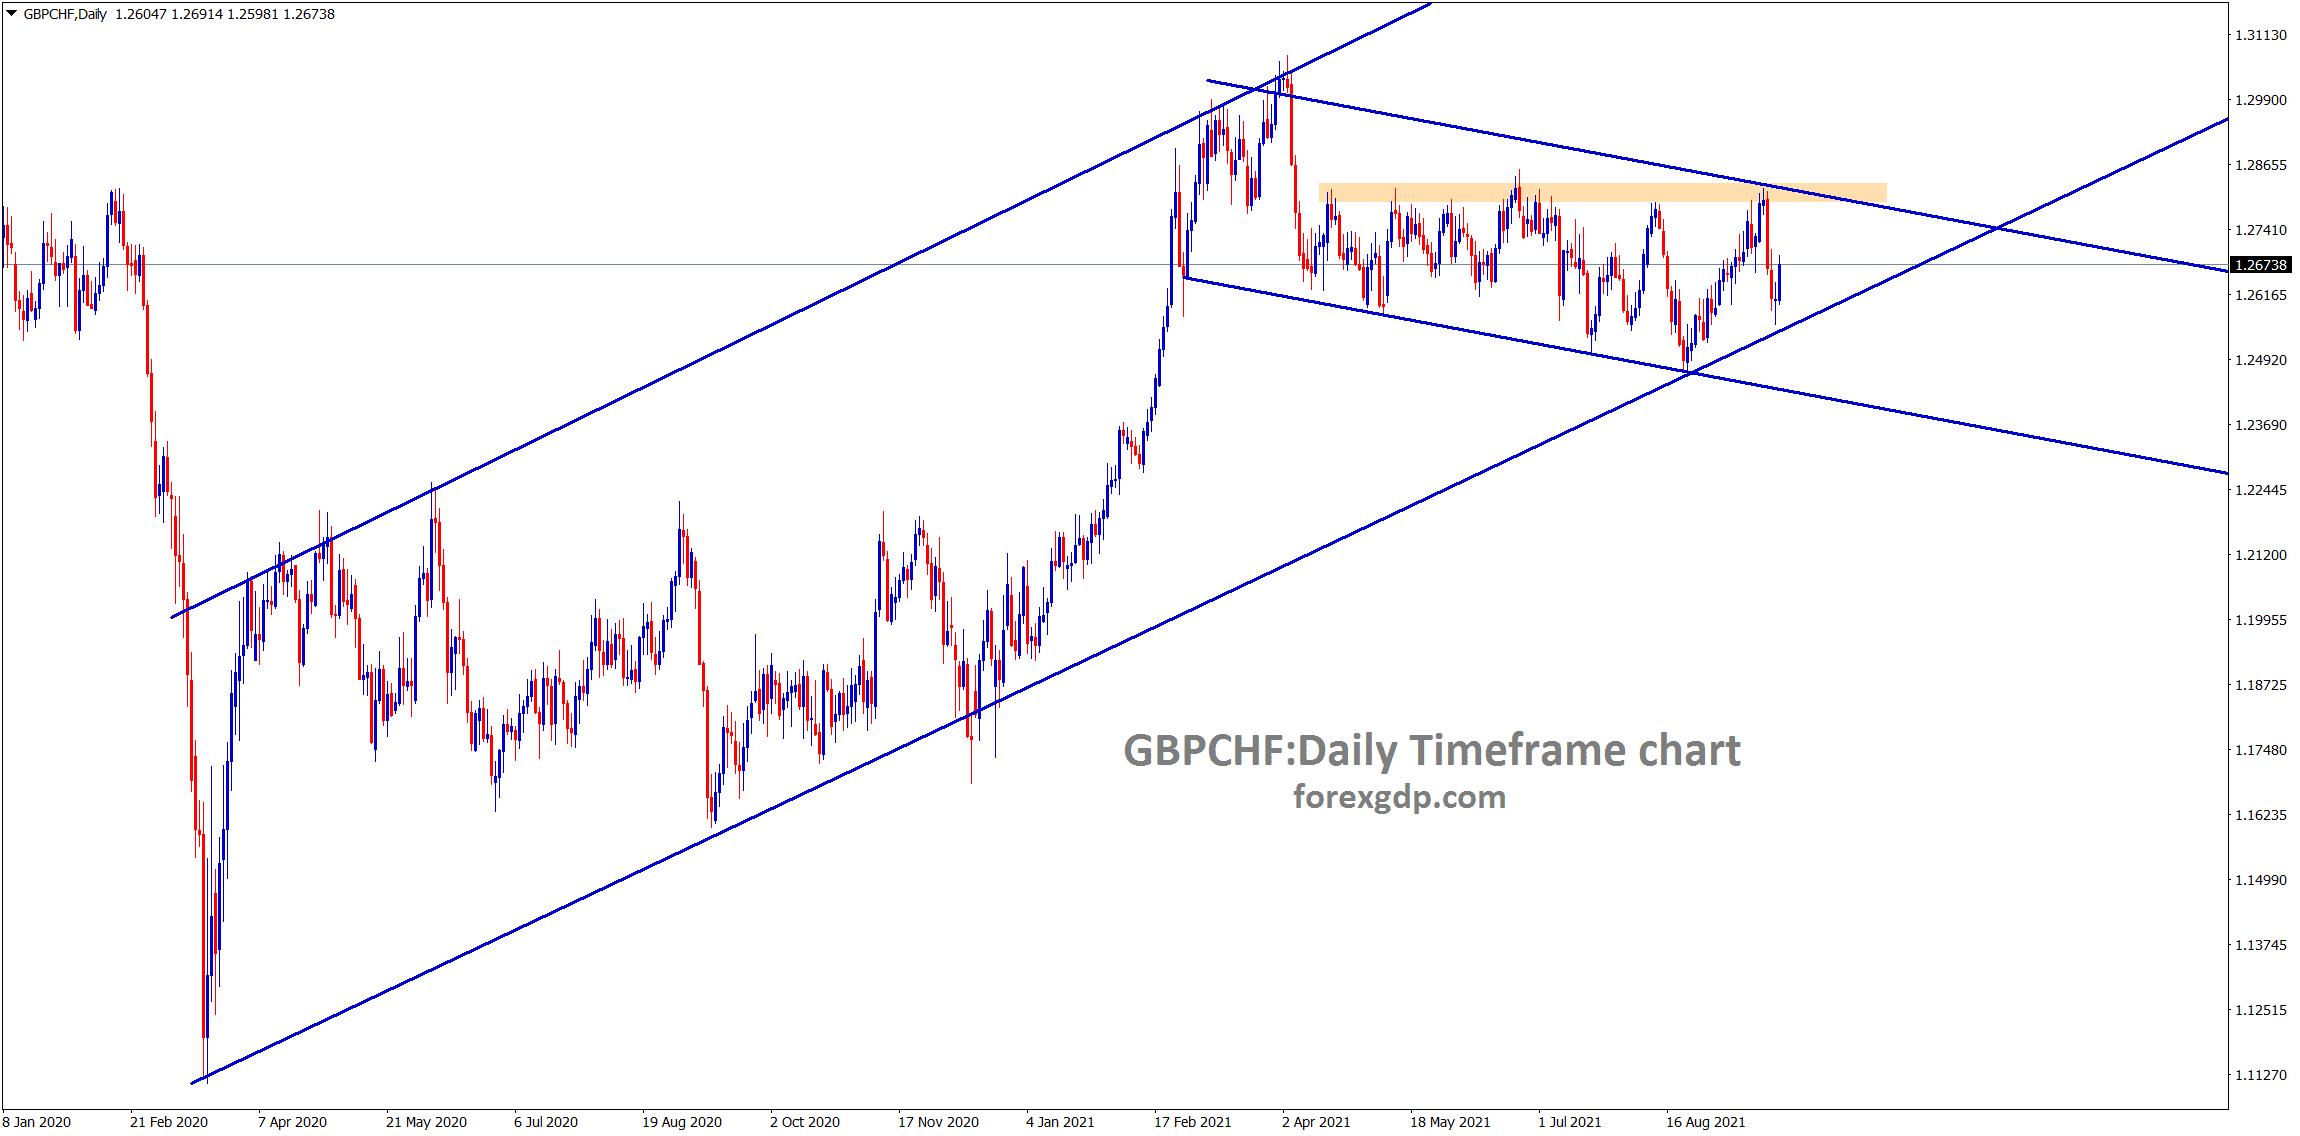 GBPCHF still moving in an uptrend and its consolidating now